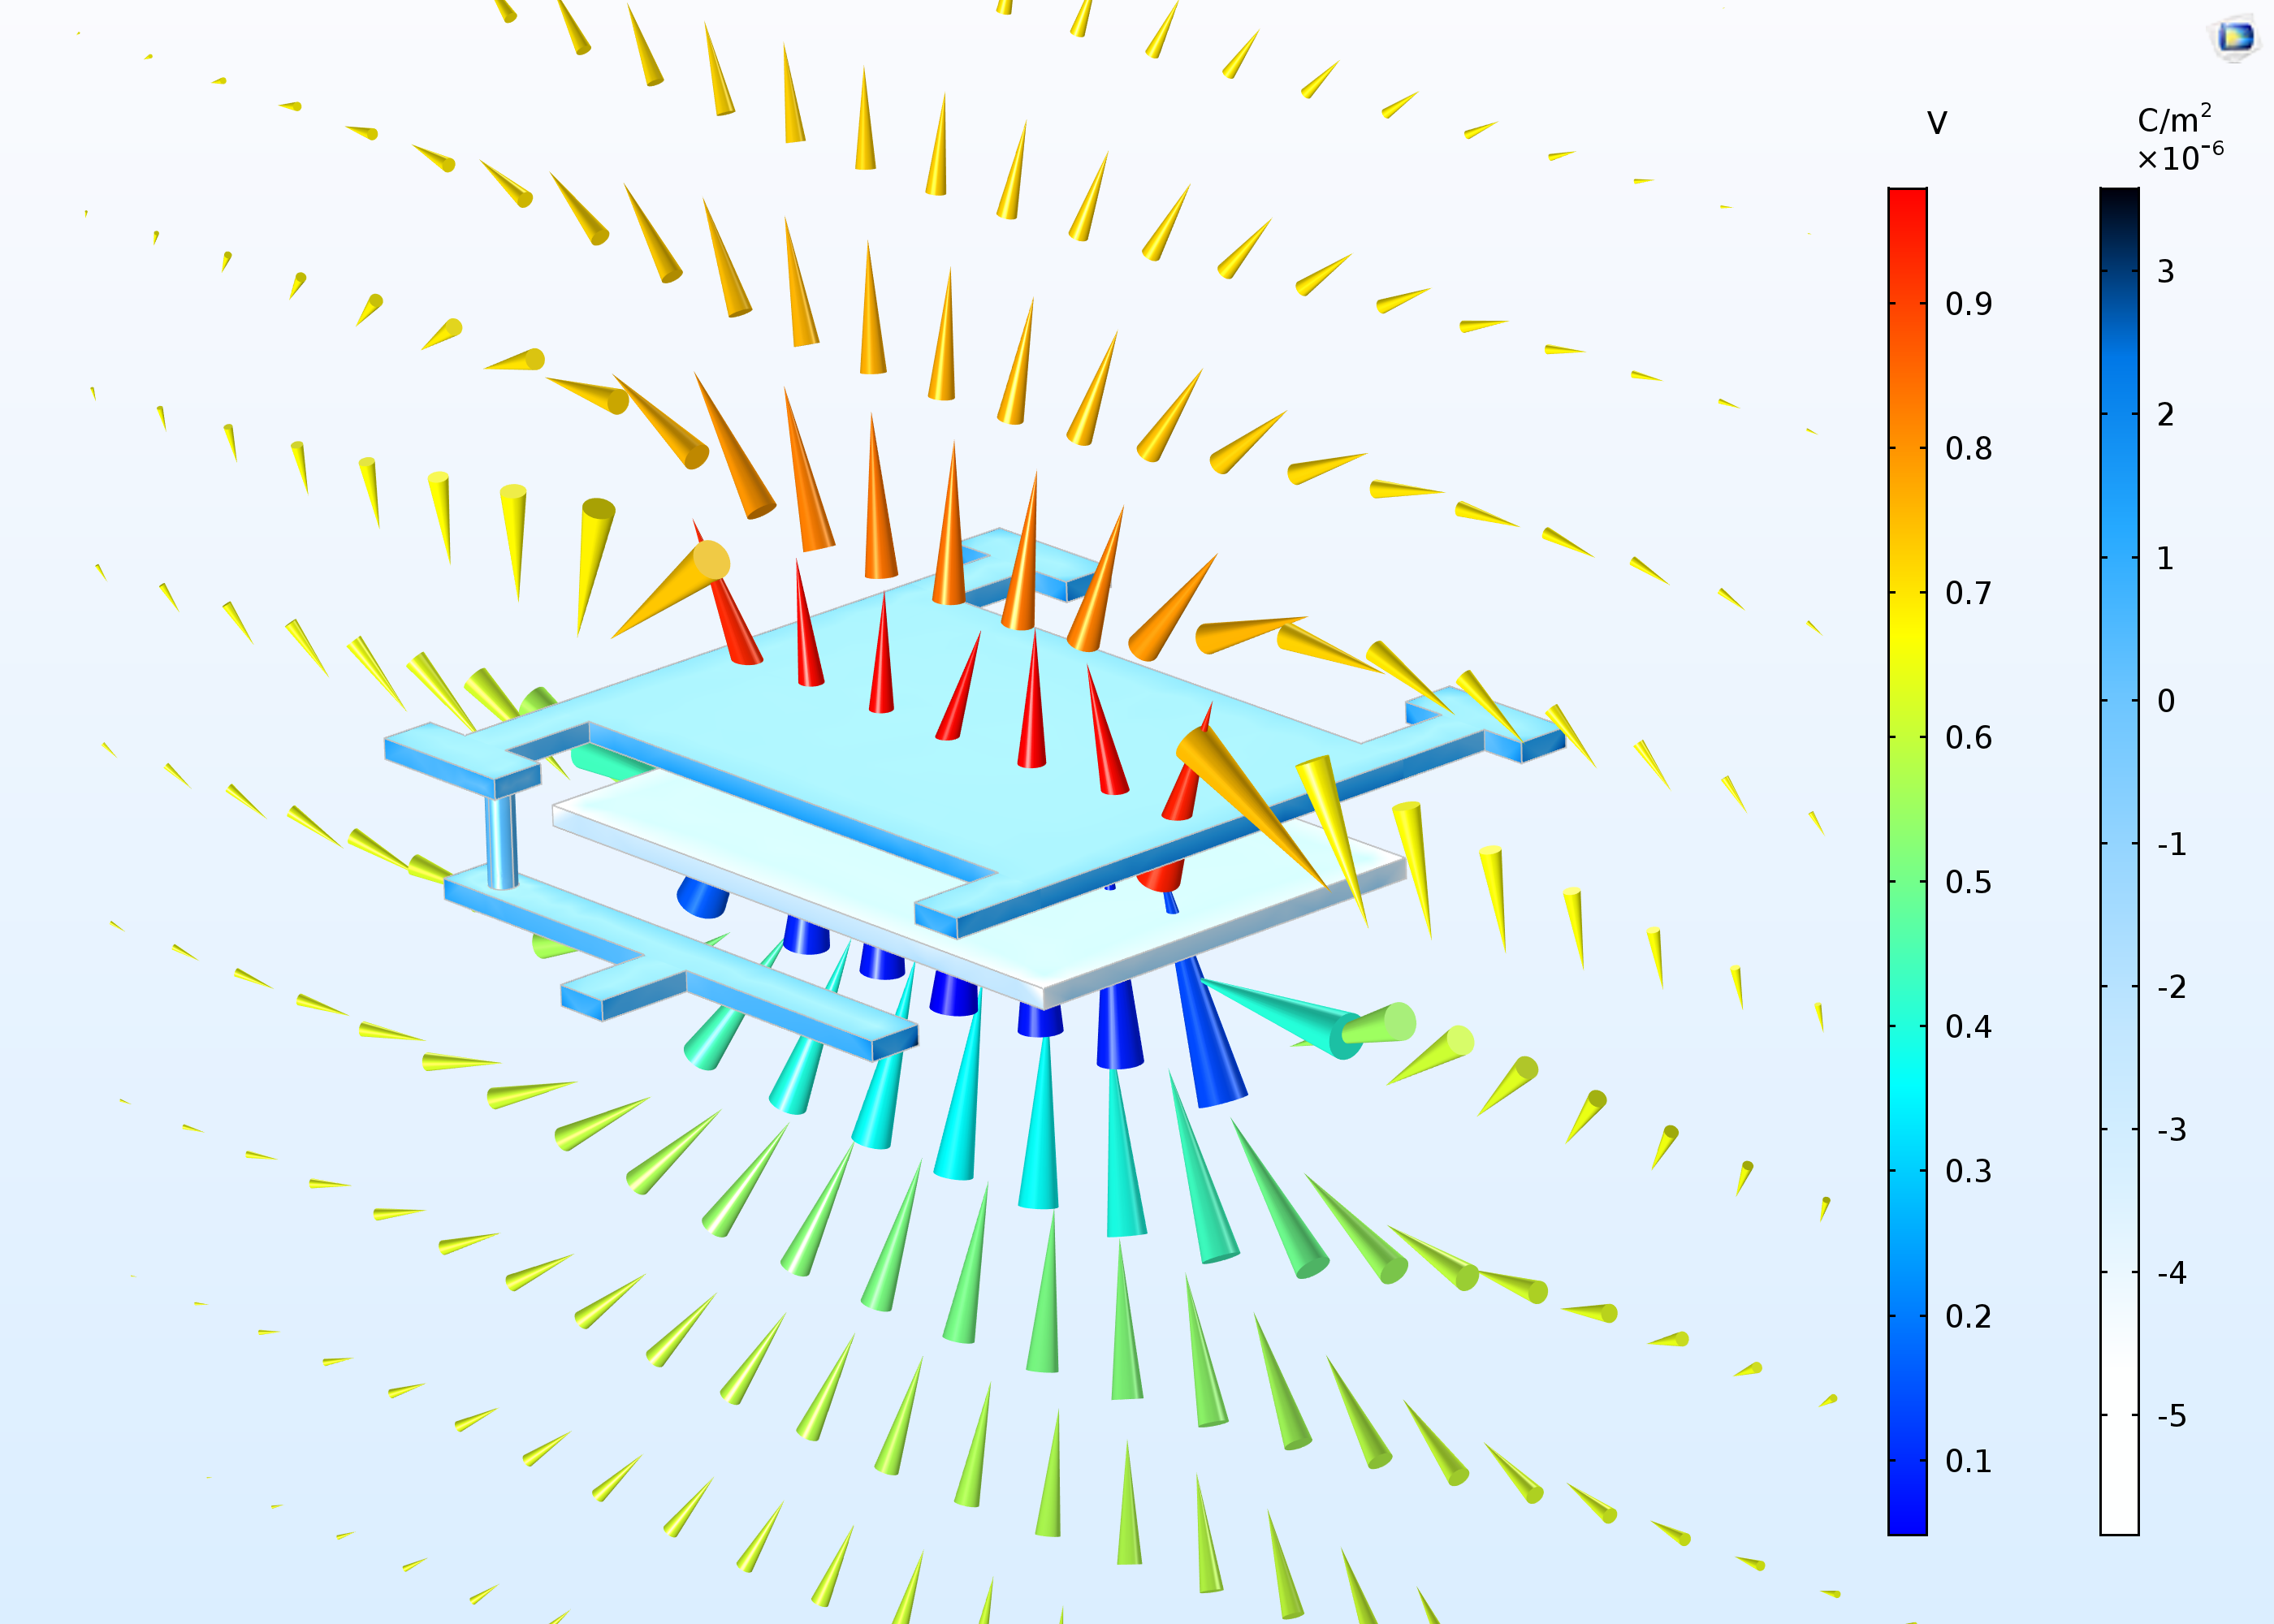 An example of a model created with boundary elements in COMSOL Multiphysics version 5.3.